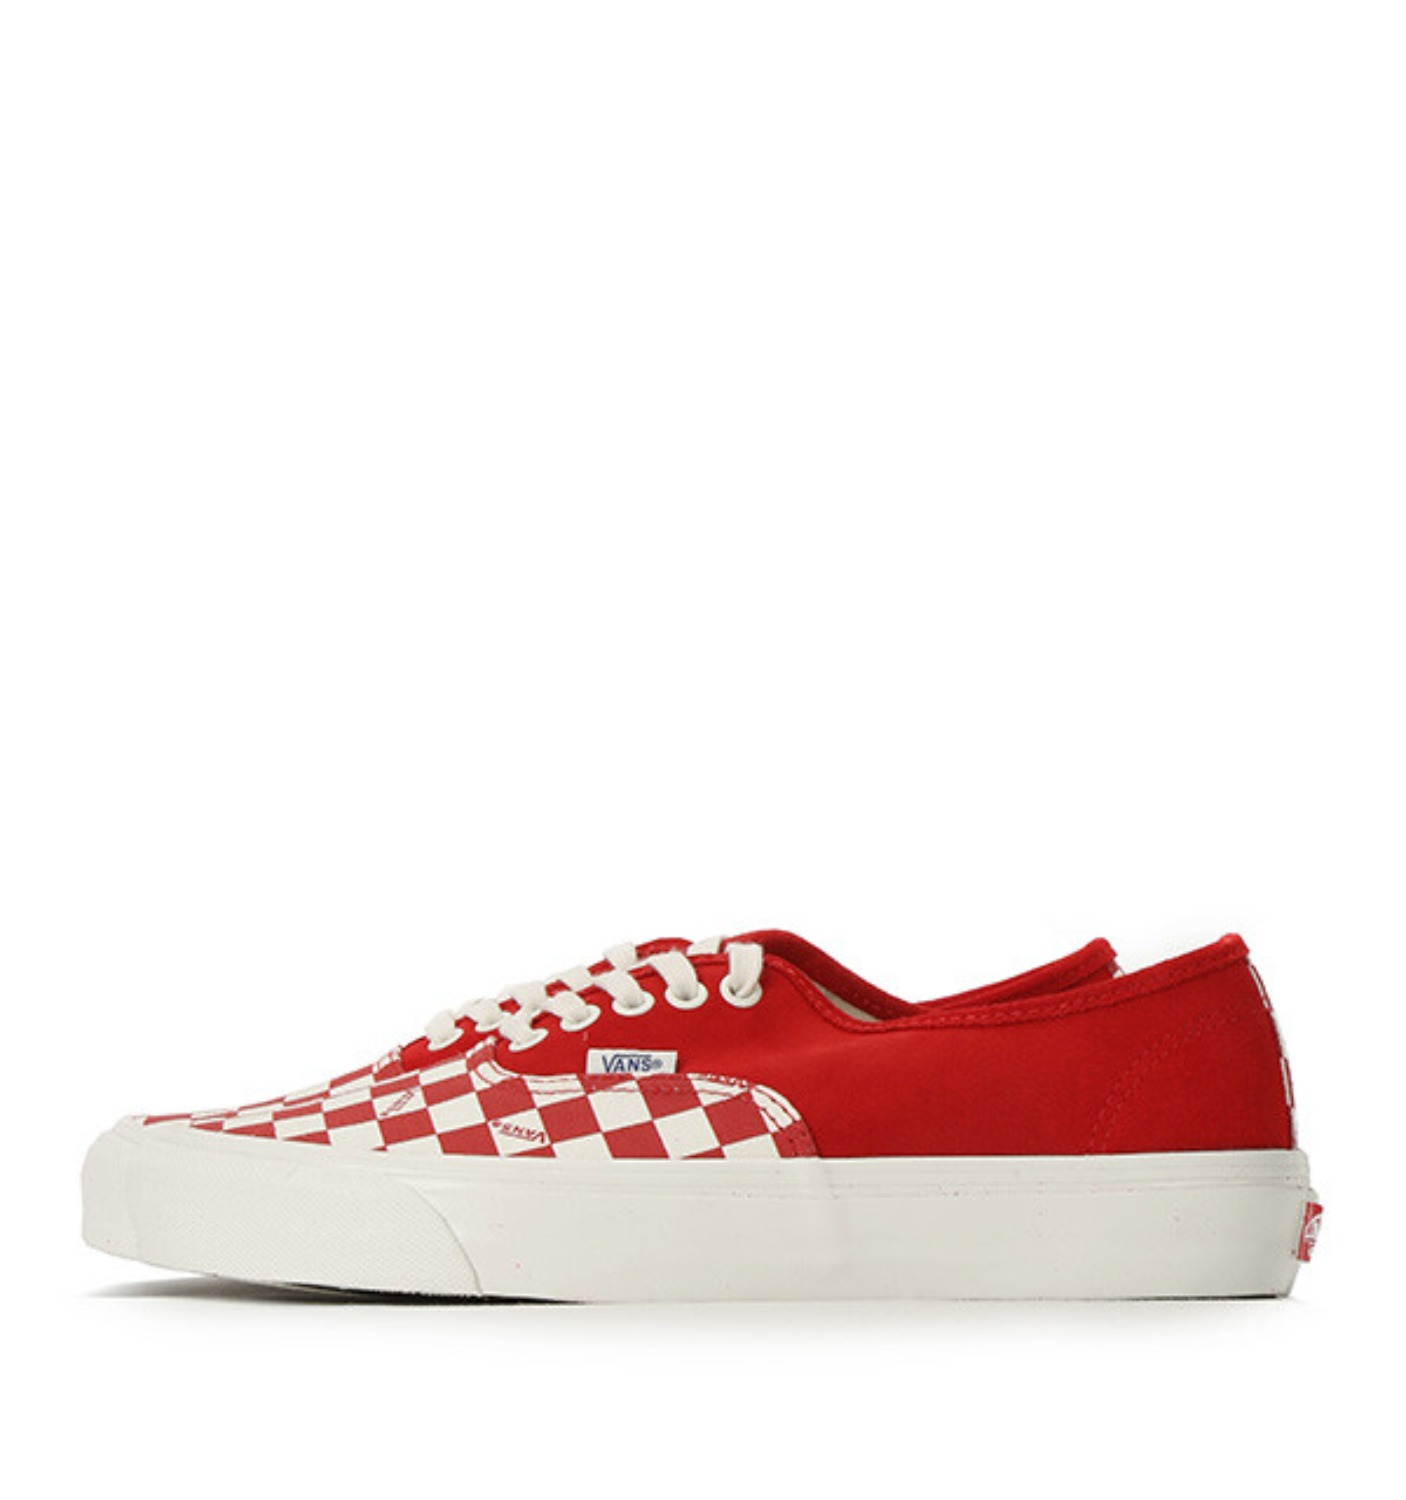 OG AUTHENTIC LX(SUEDE/CANVAS) RACING RED/CHECKERBOARD